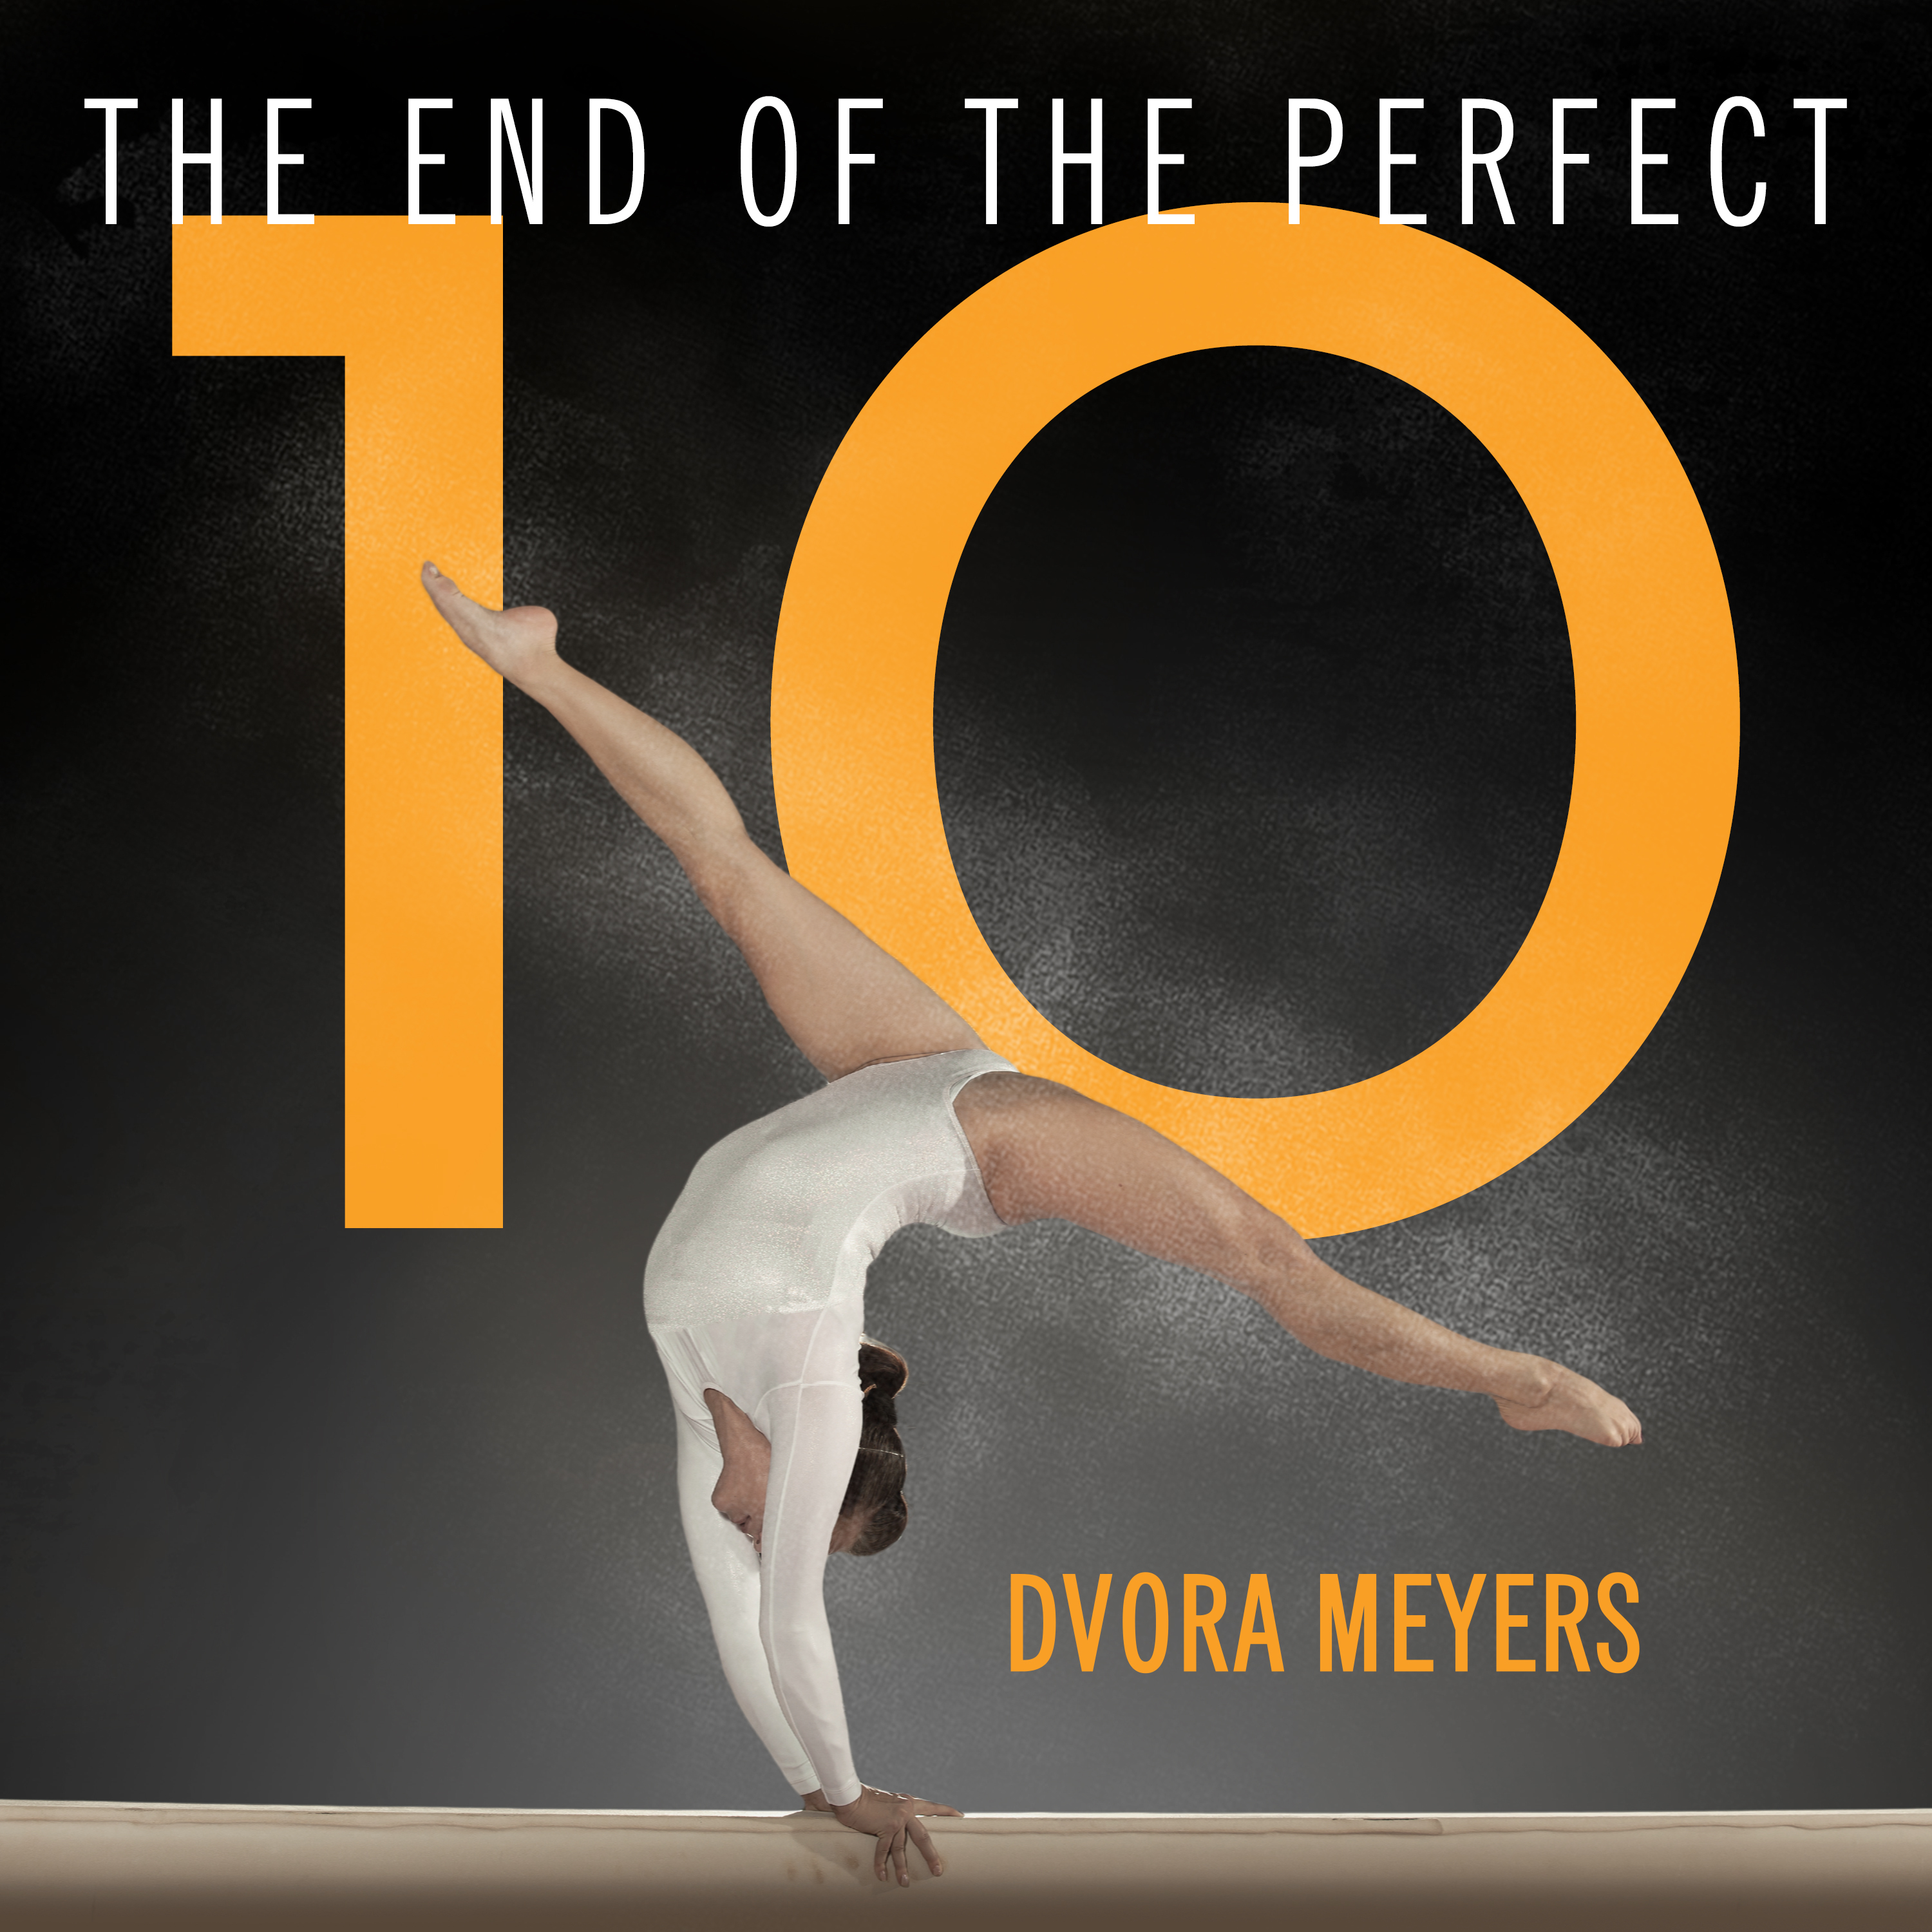 Printable The End of the Perfect 10: The Making and Breaking of Gymnastics' Top Score from Nadia to Now Audiobook Cover Art